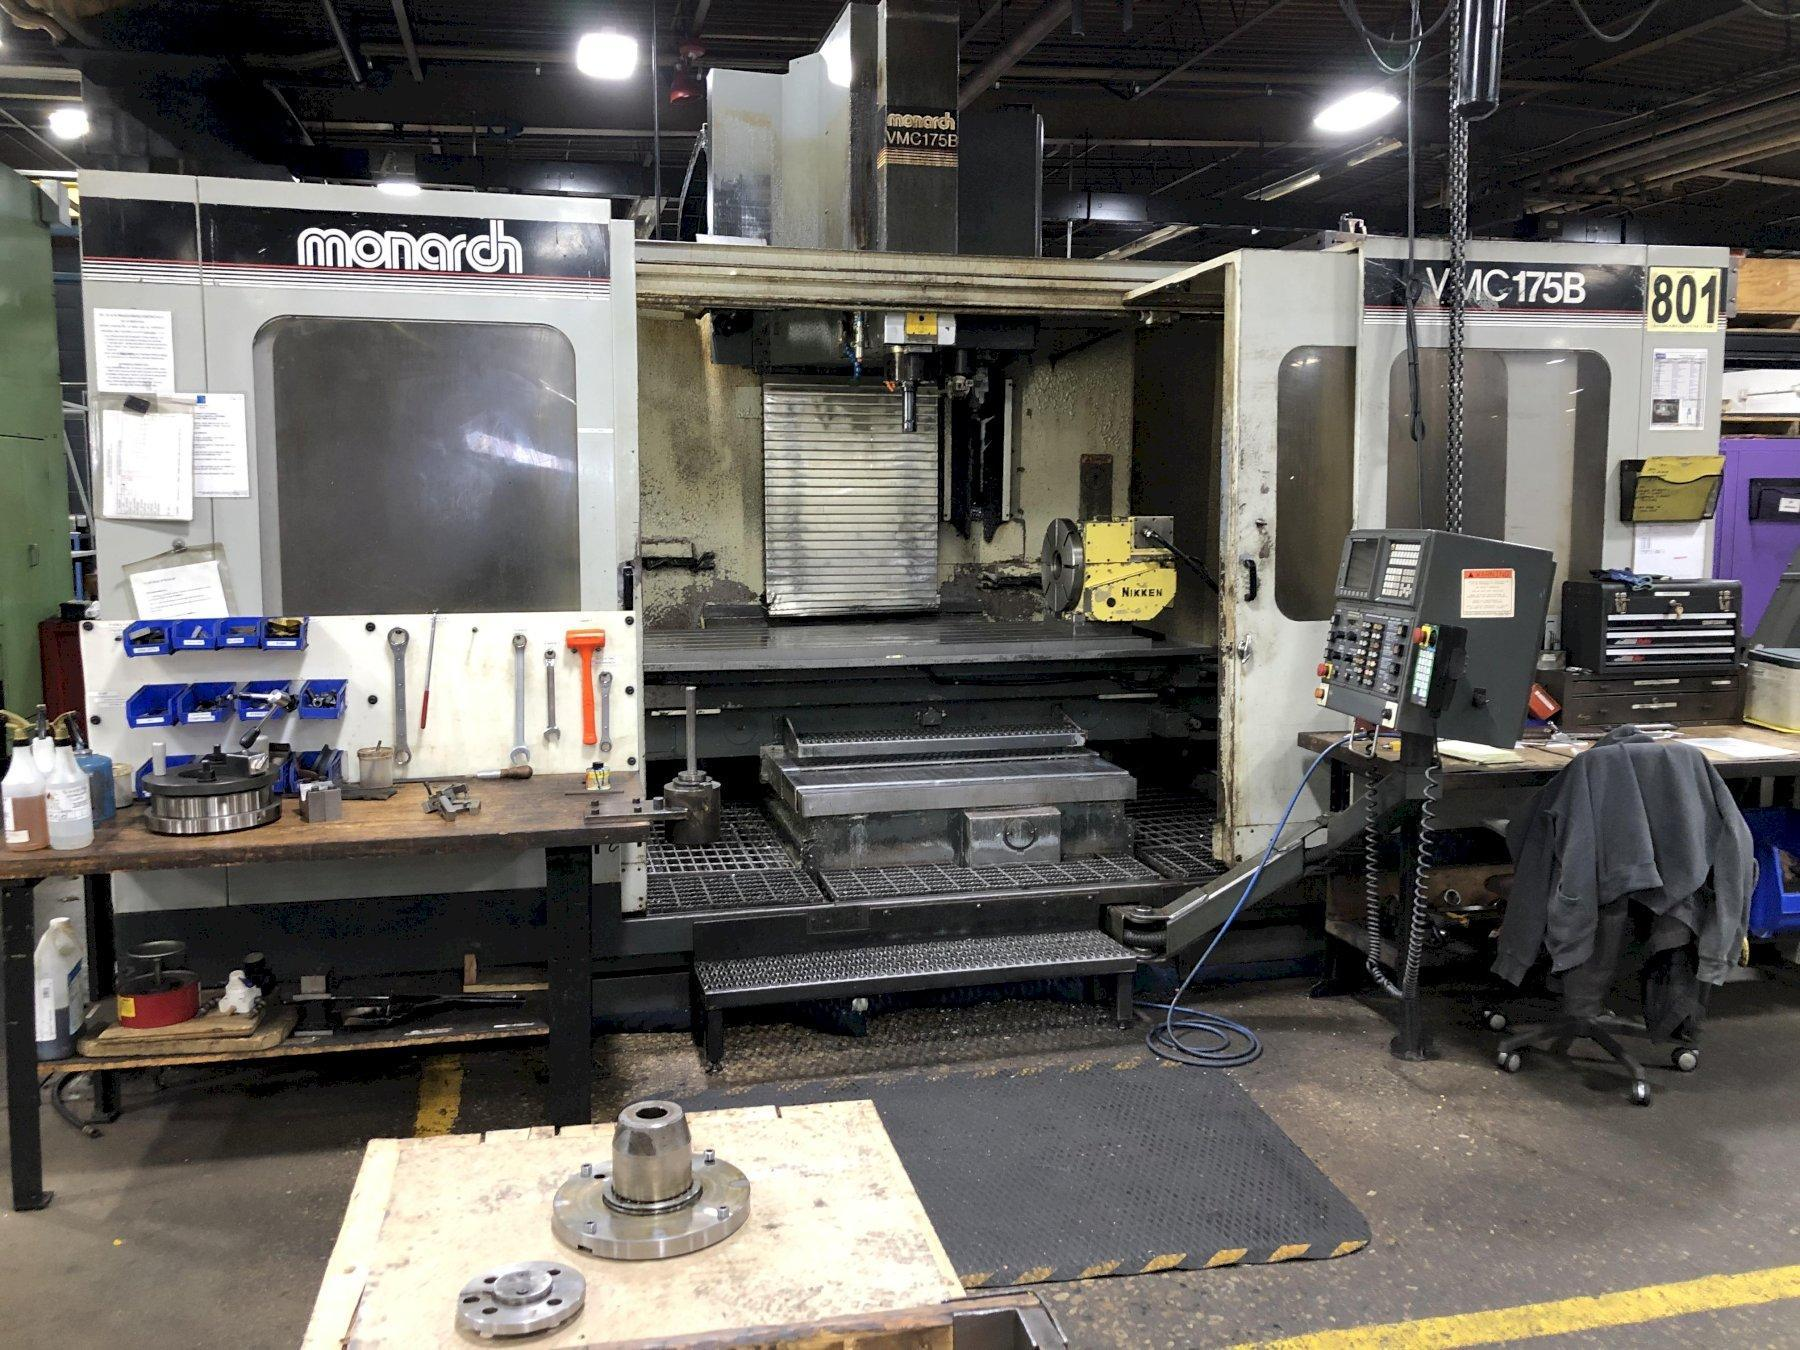 "MONARCH VMC175 WITH EXTENDED Z, 47"" Z CLEARANCE, 30 X 76 X 44 TRAVELS, FANUC 15M, TSC, OUTRIGGERS, 1994, NEW BALLSCREW  2018, NEWER SCALES"